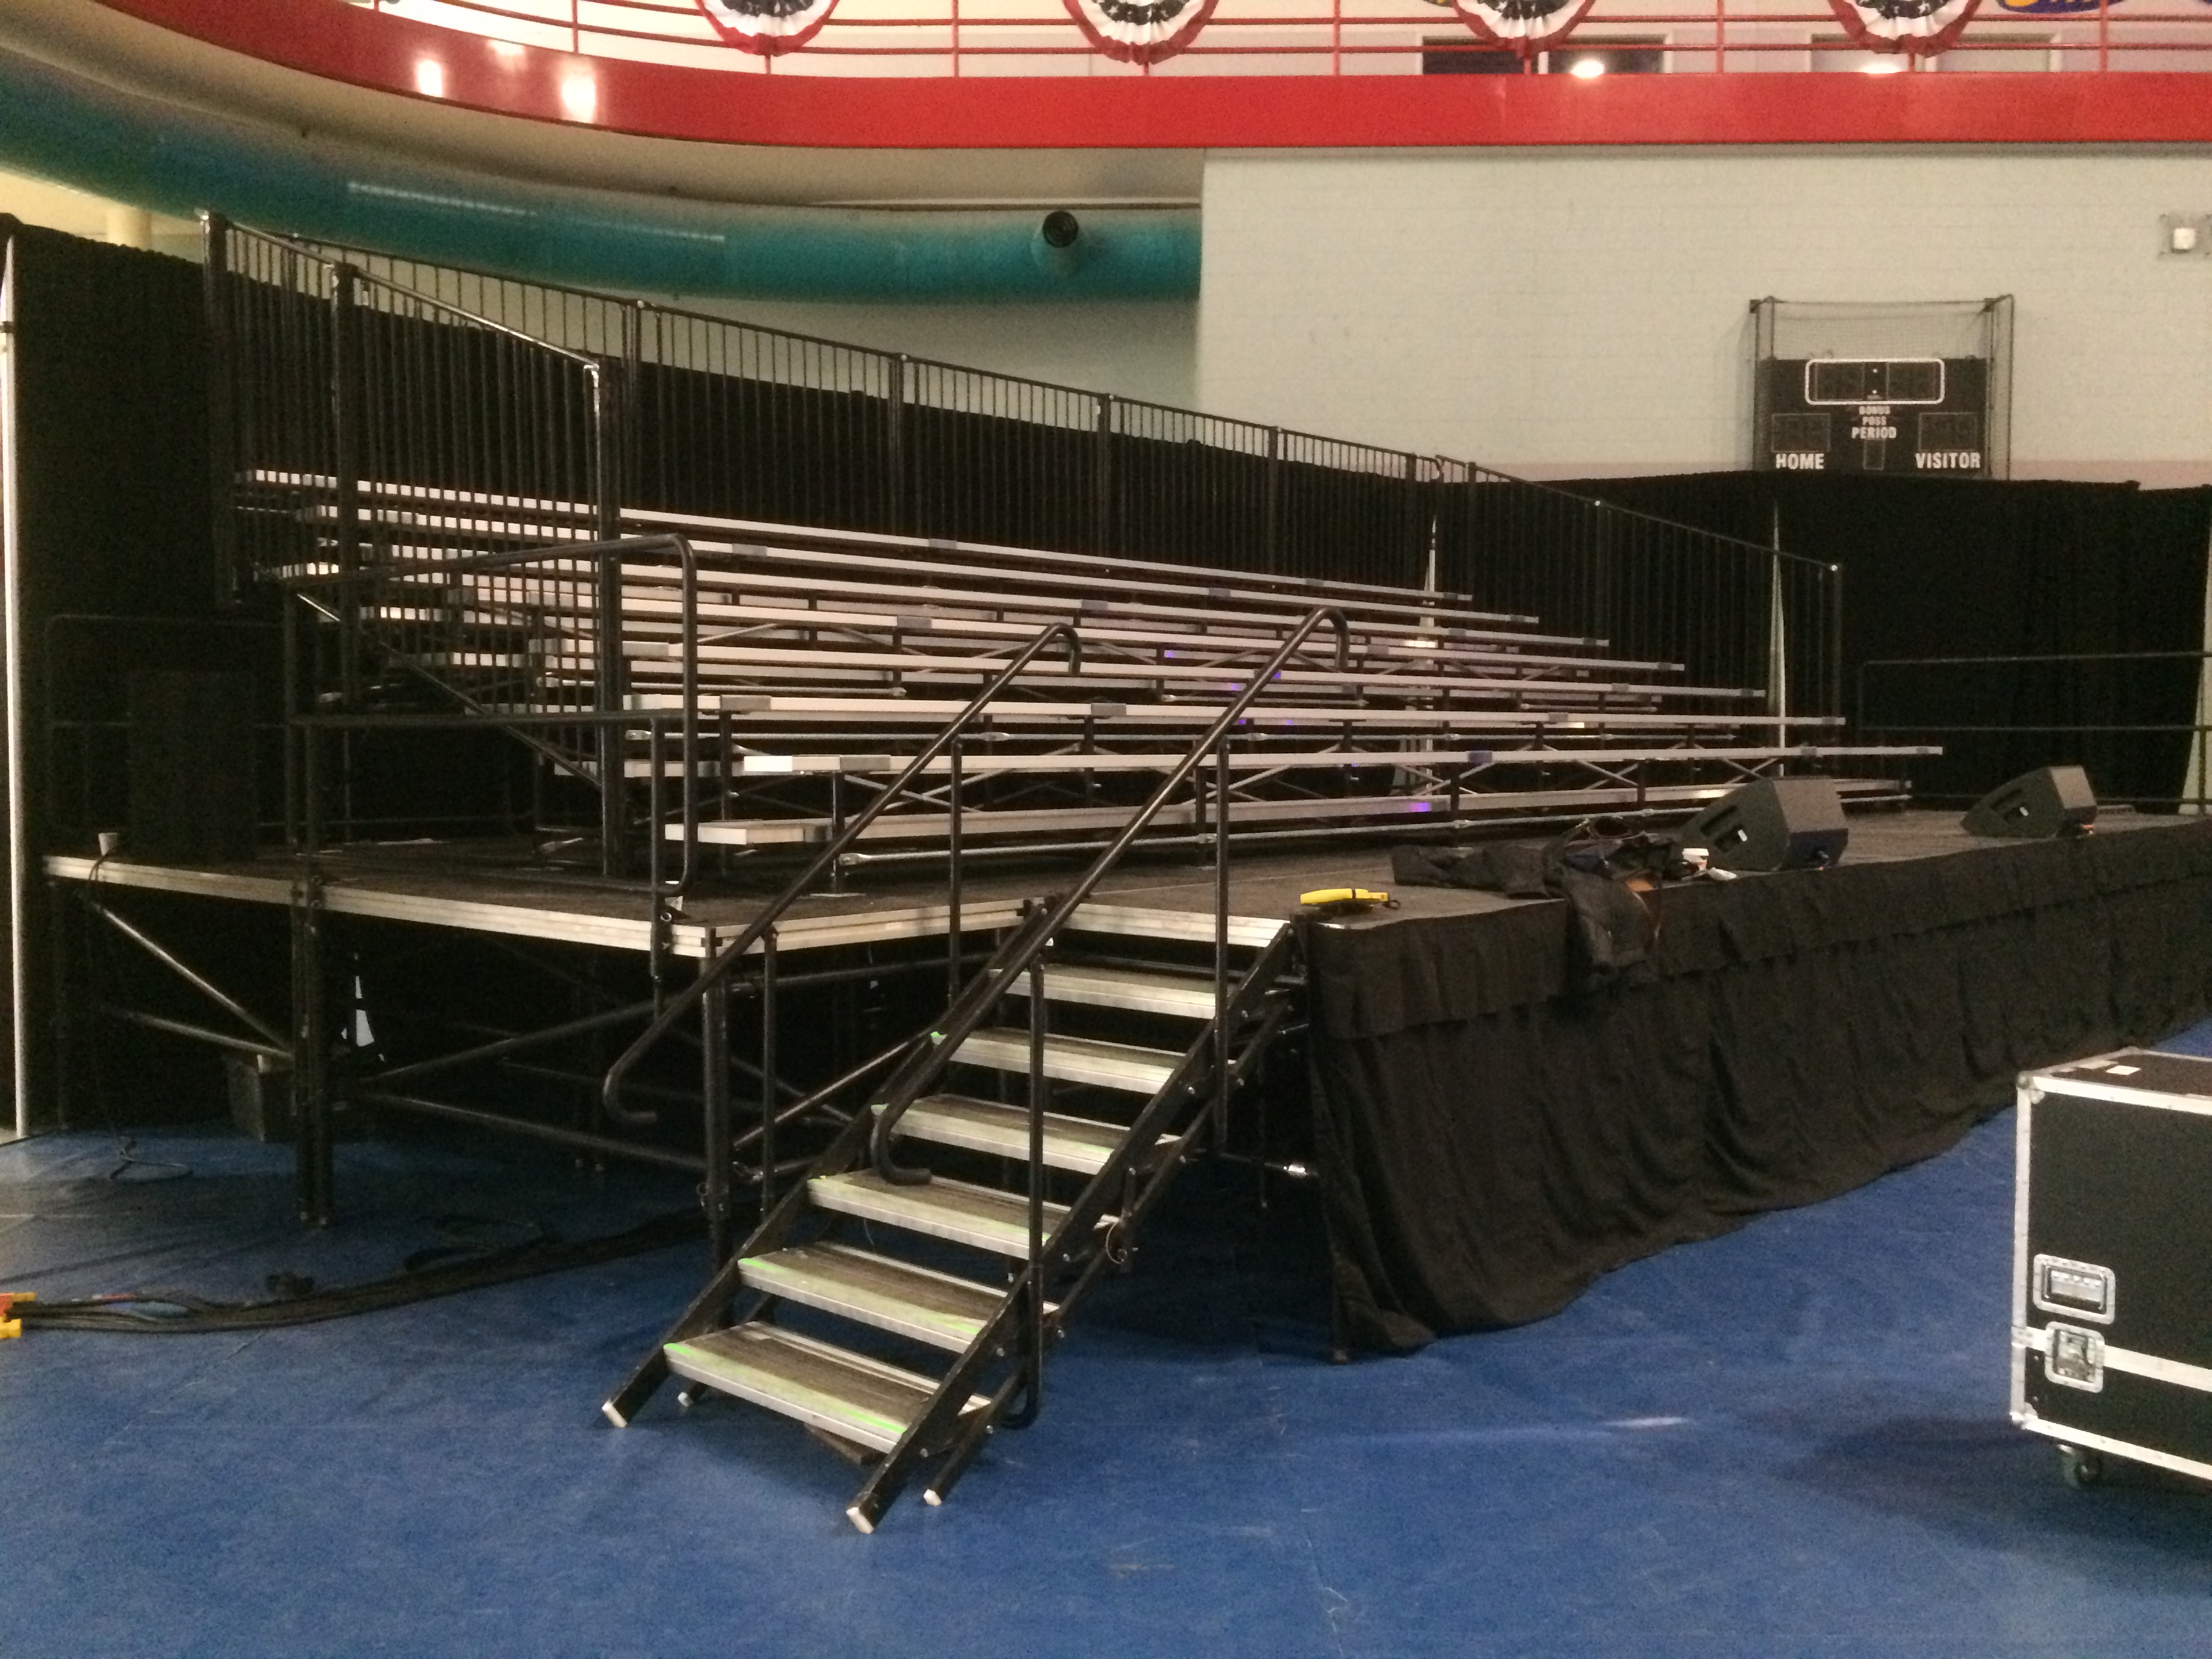 Raised 7-row x 32′ long granite bleacher seats 168 with no aisle political event